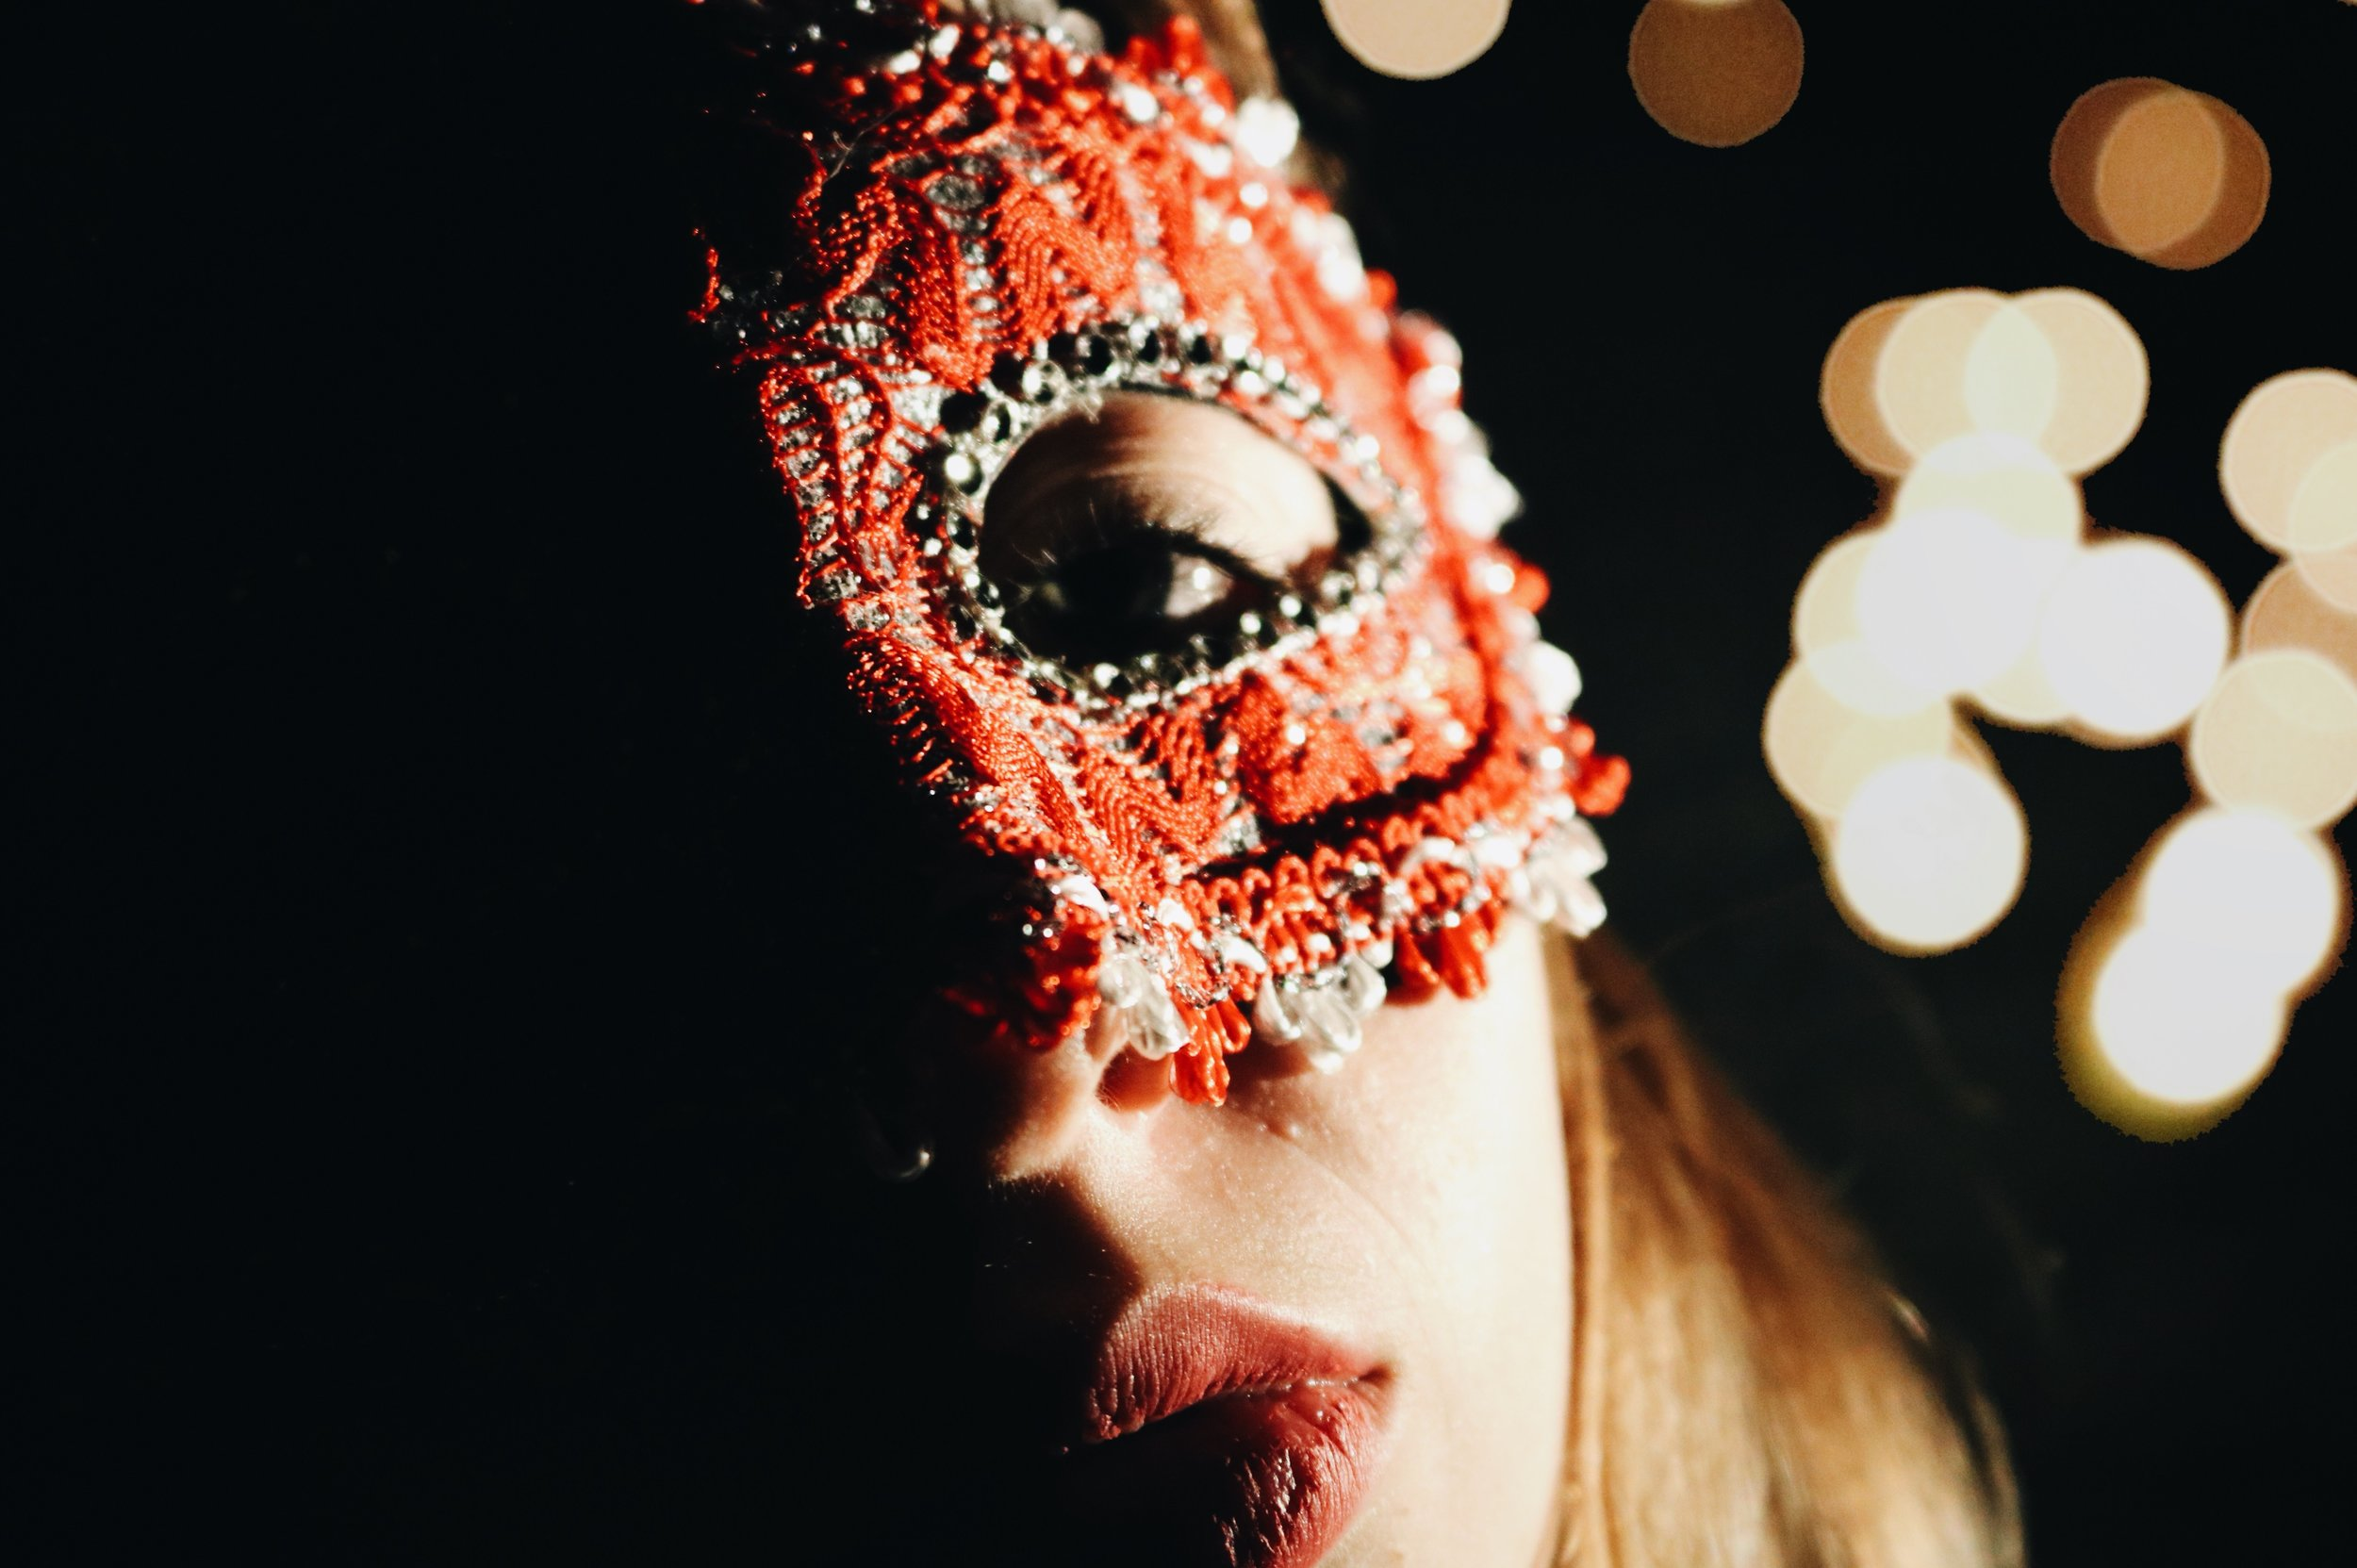 The Grand Tasting La Cantera Resort & Spa, San Antonio Grand Ballroom 7:00 PM to 10:00 PM | $100 General Admission/$100 At the Door | $150 VIP (Advance Purchase Only)  This Masquerade Tasting is the swankiest party around. Bring your masks and your fun. We love a great theme and a masquerade is perfect for this year of surprises, as that is what we have in store for The Grand Tasting. The deliciousness that you know to be true to this event including the best bites from our San Antonio chefs and restaurants along with wines from across the globe and spirits showcasing creative cocktails are the perfect stage for this event of grandeur. Lively entertainment and an evening of who's who offer a true celebration.